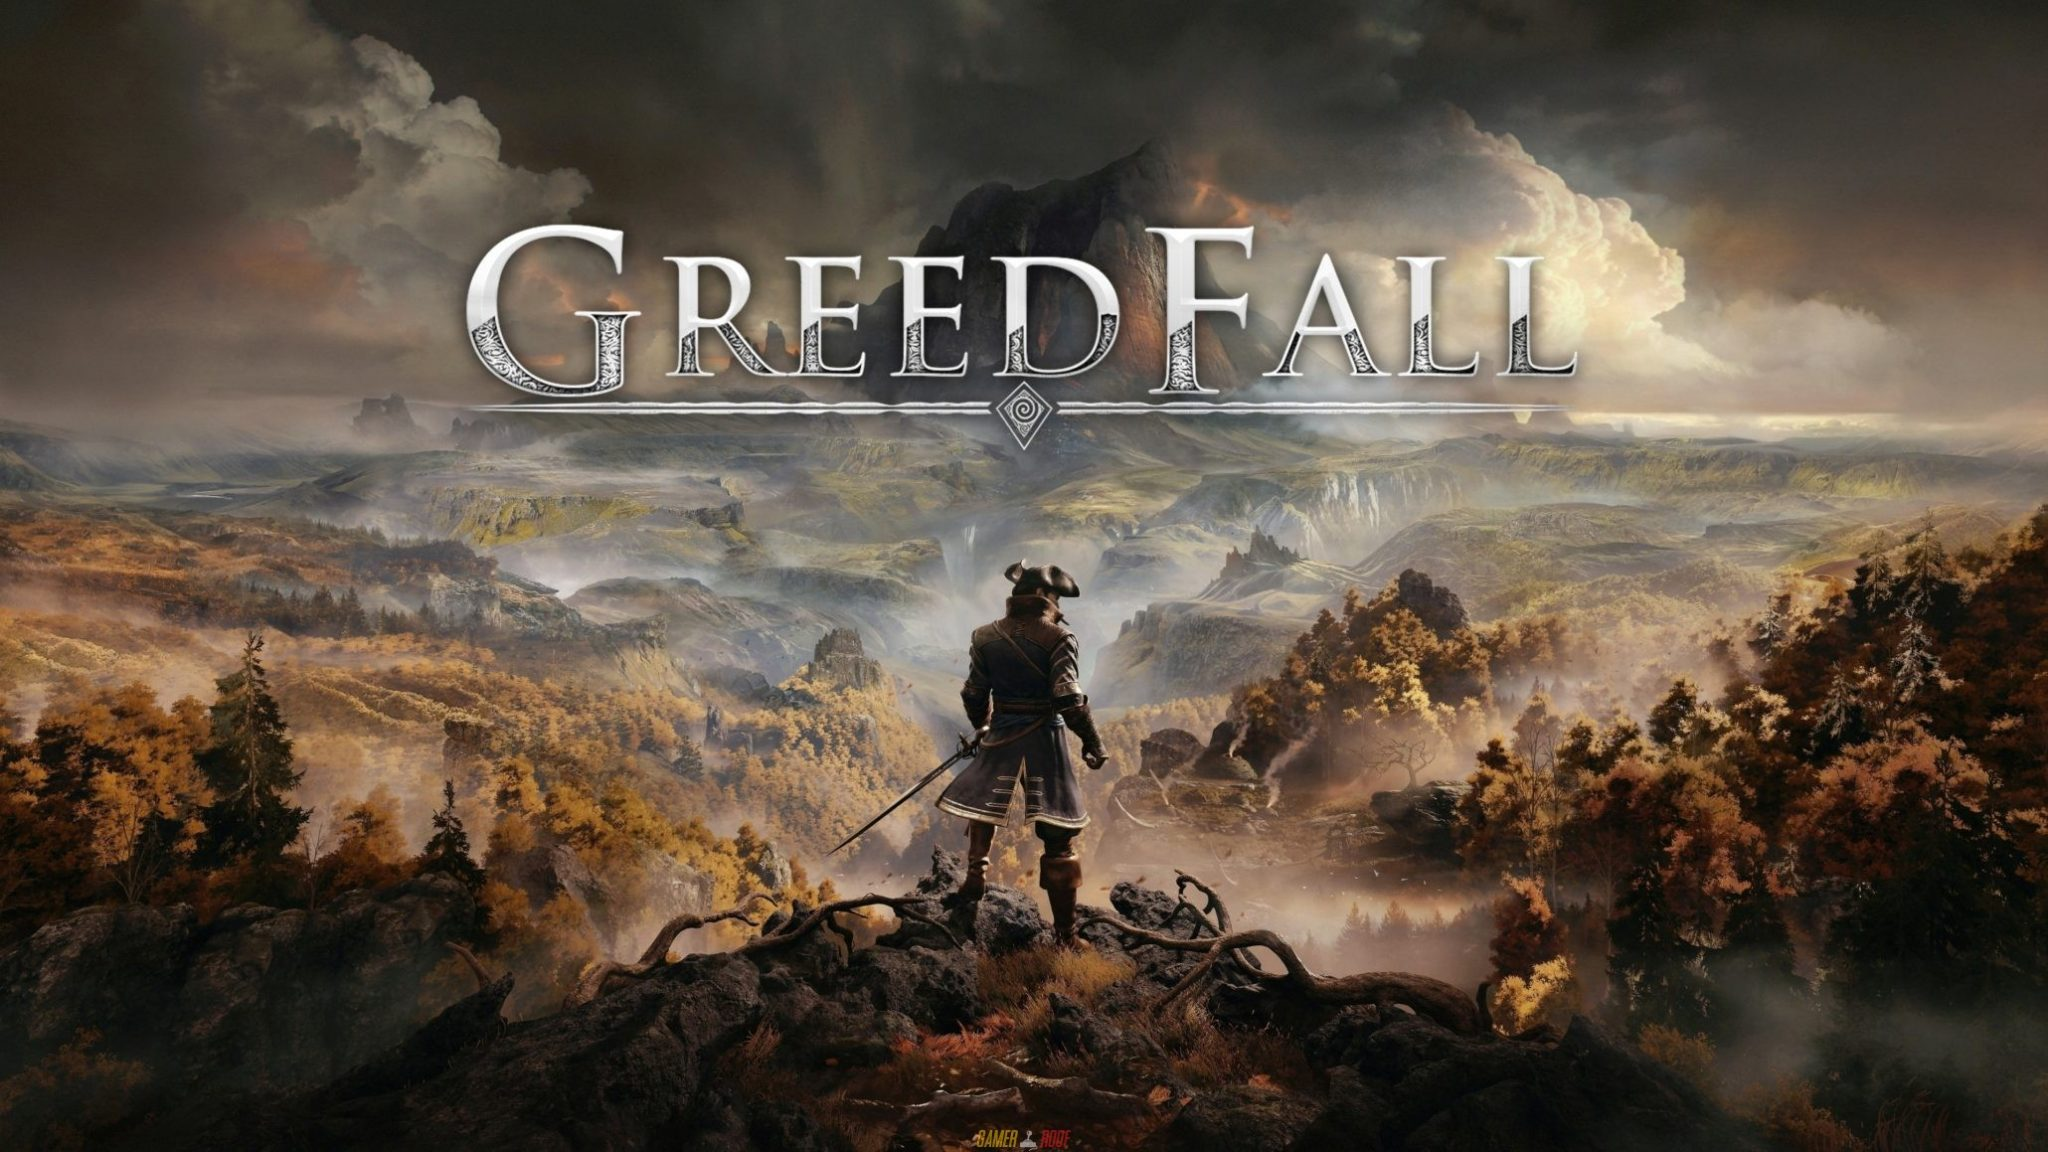 GreedFall PS4 Version Full Game Free Download 2019